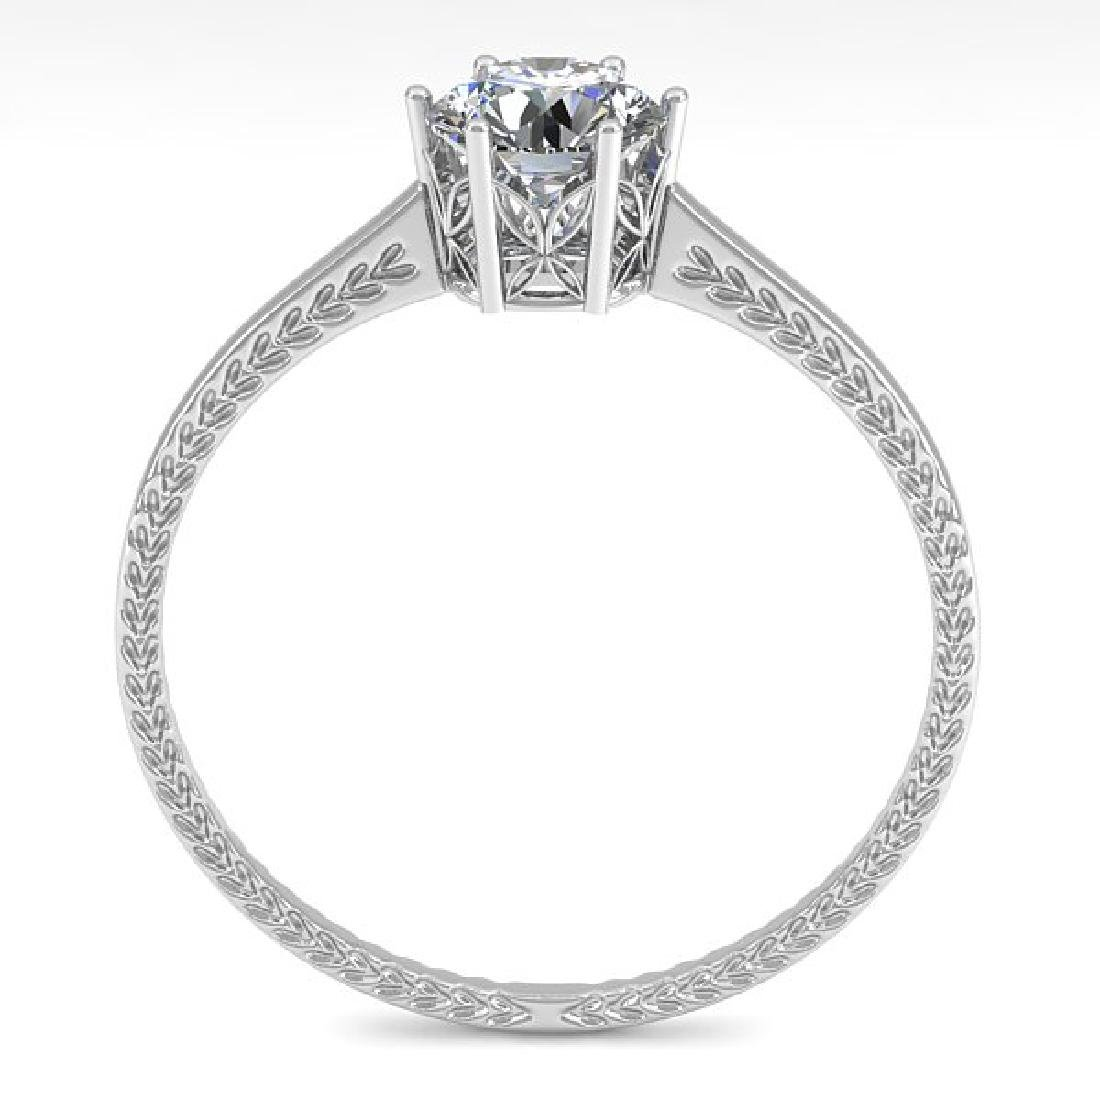 0.51 CTW VS/SI Diamond Art Deco Ring 14K White Gold - 3